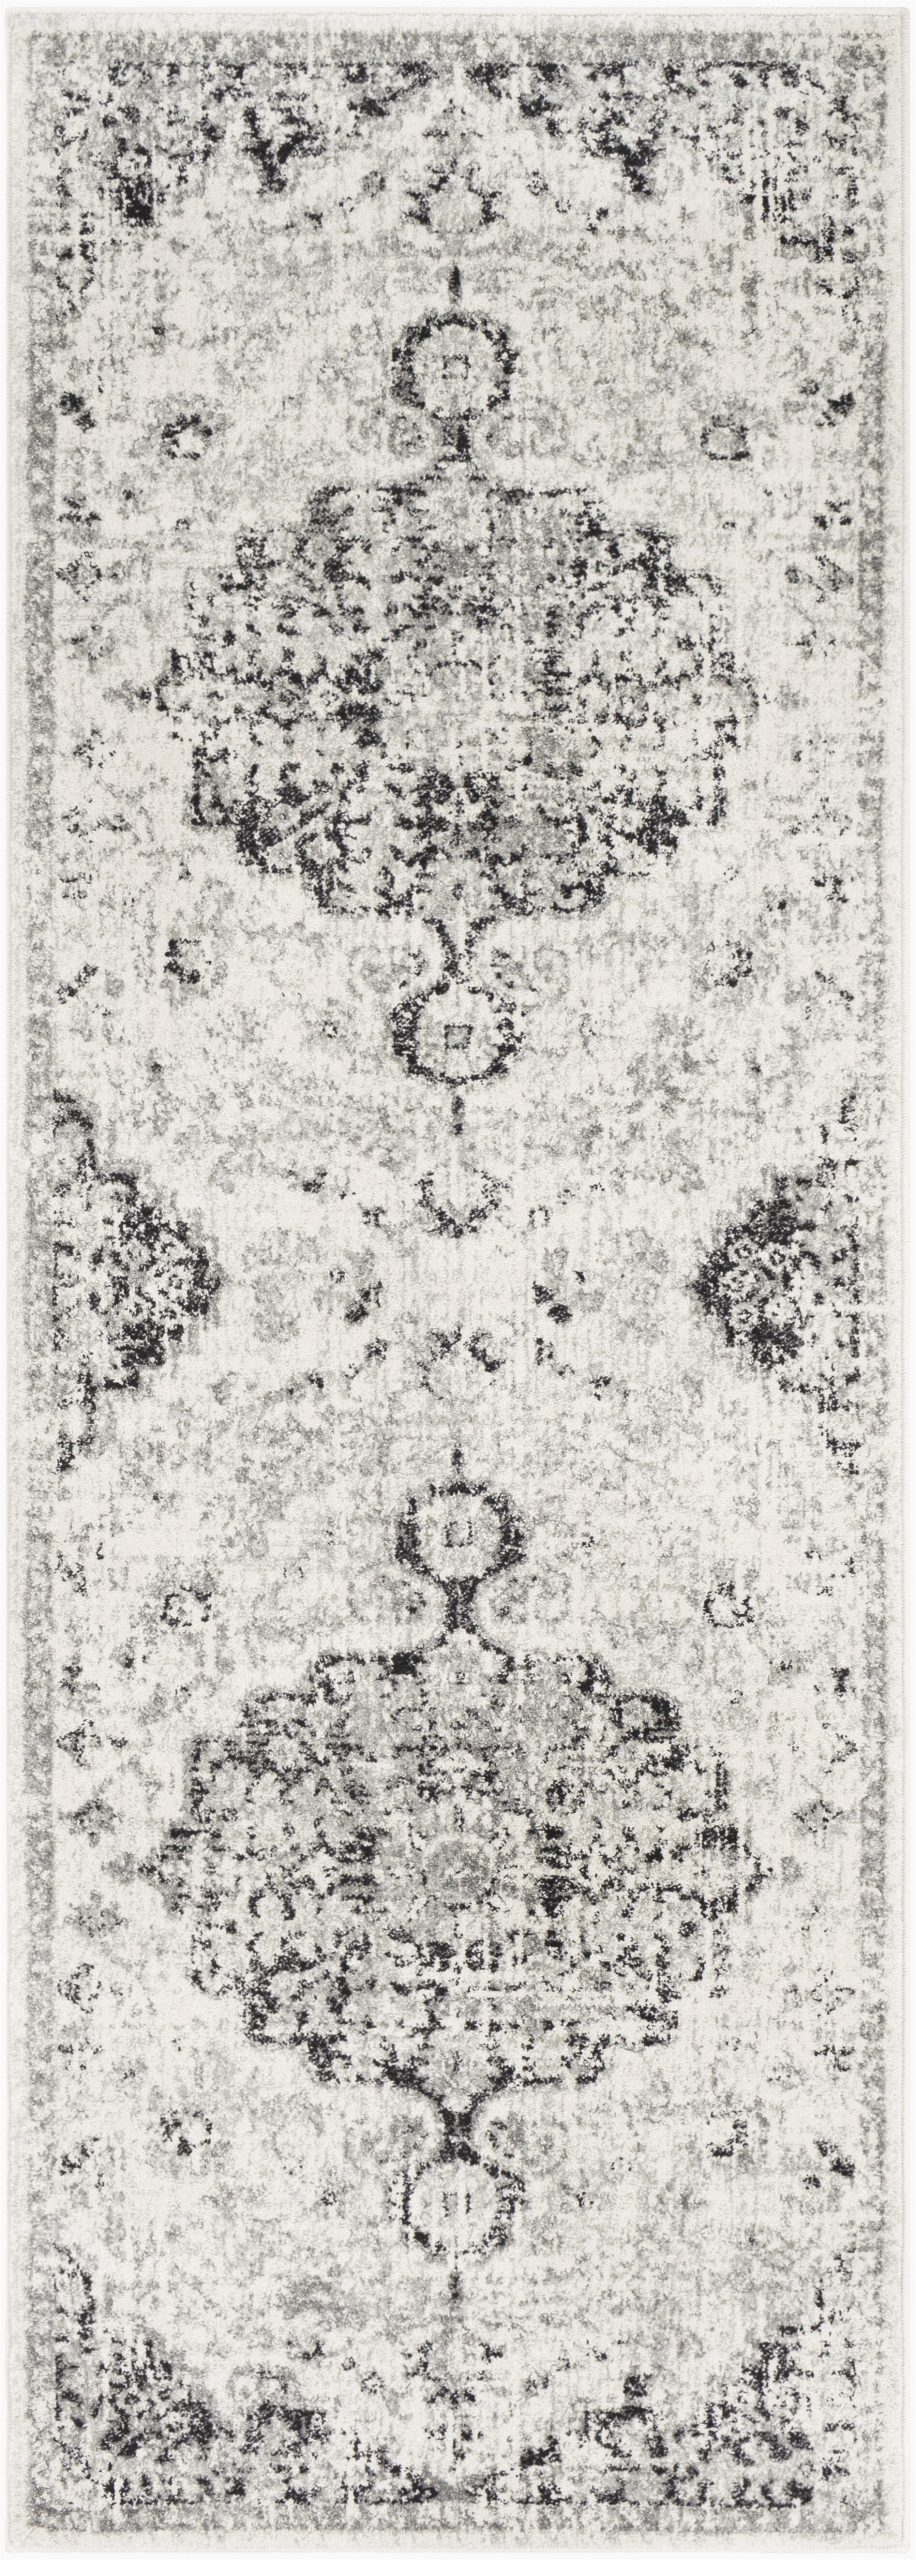 Hillsby Gray Beige area Rug Hillsby Black Light Gray Beige Charcoal area Rug